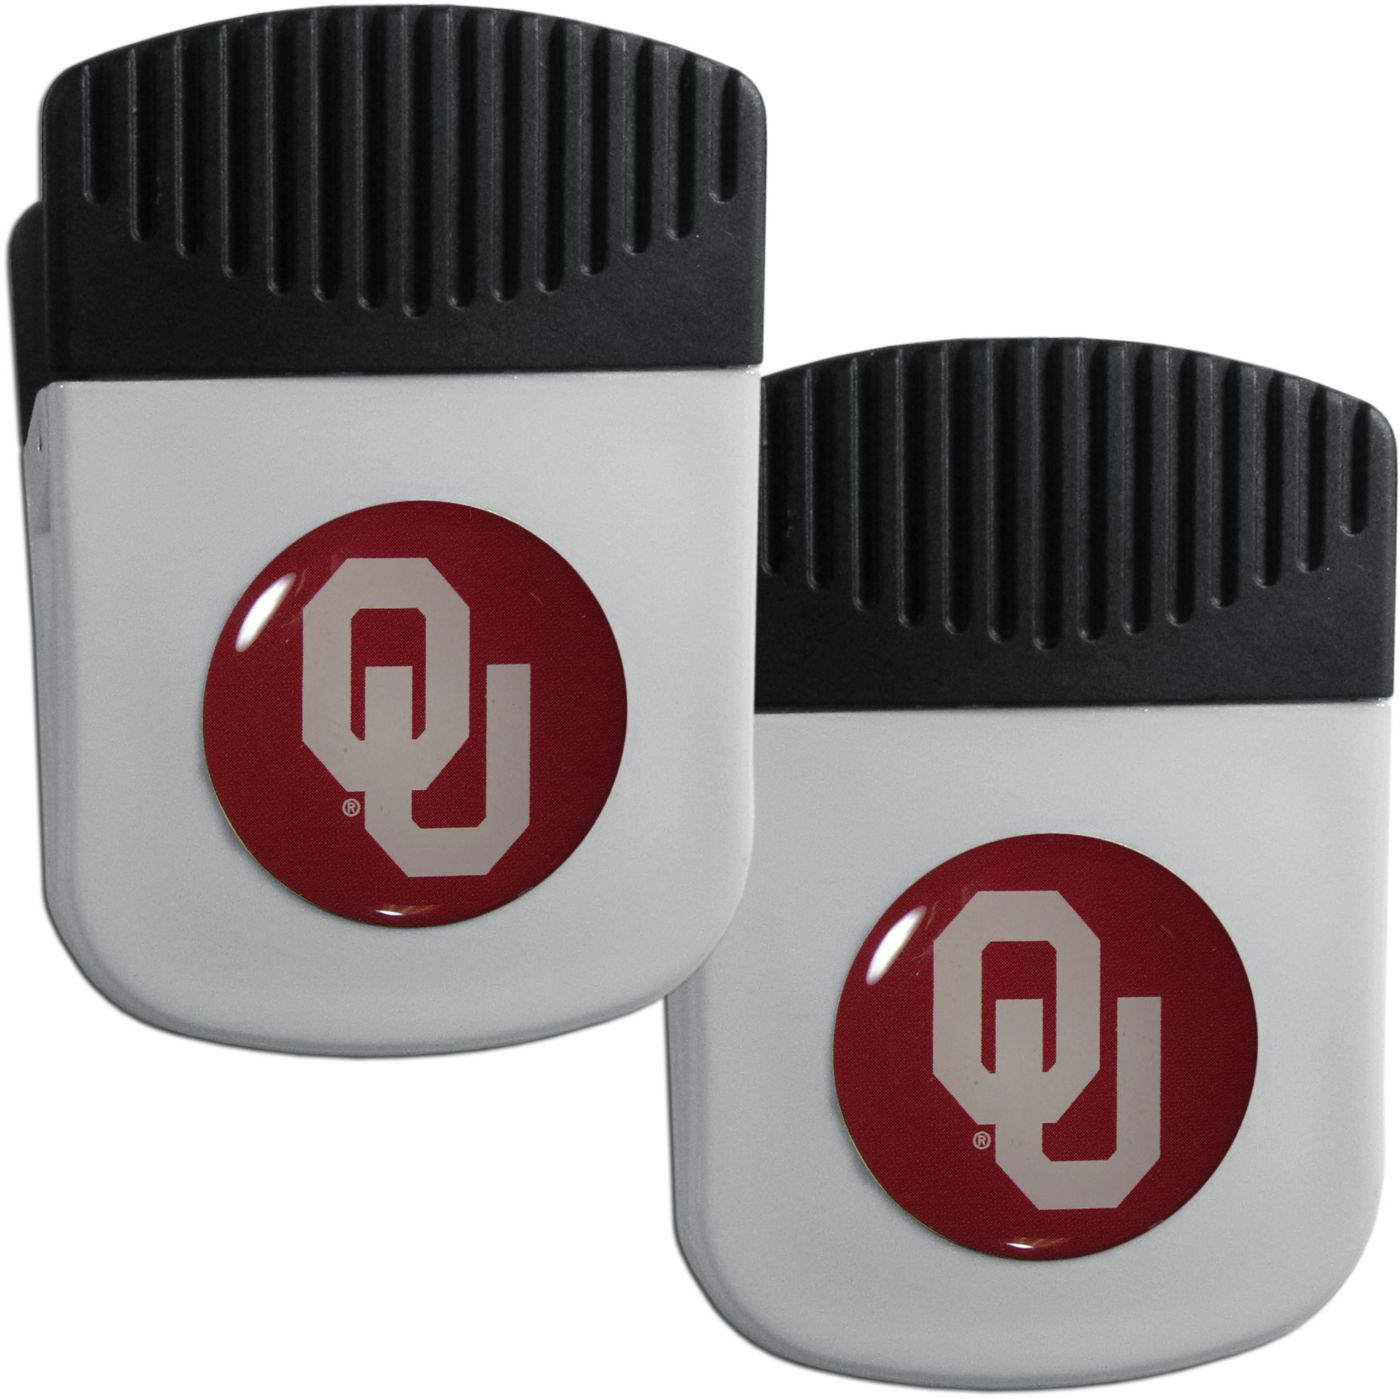 Oklahoma Sooners Chip Clip Magnet and Bottle Opener 2 Pack